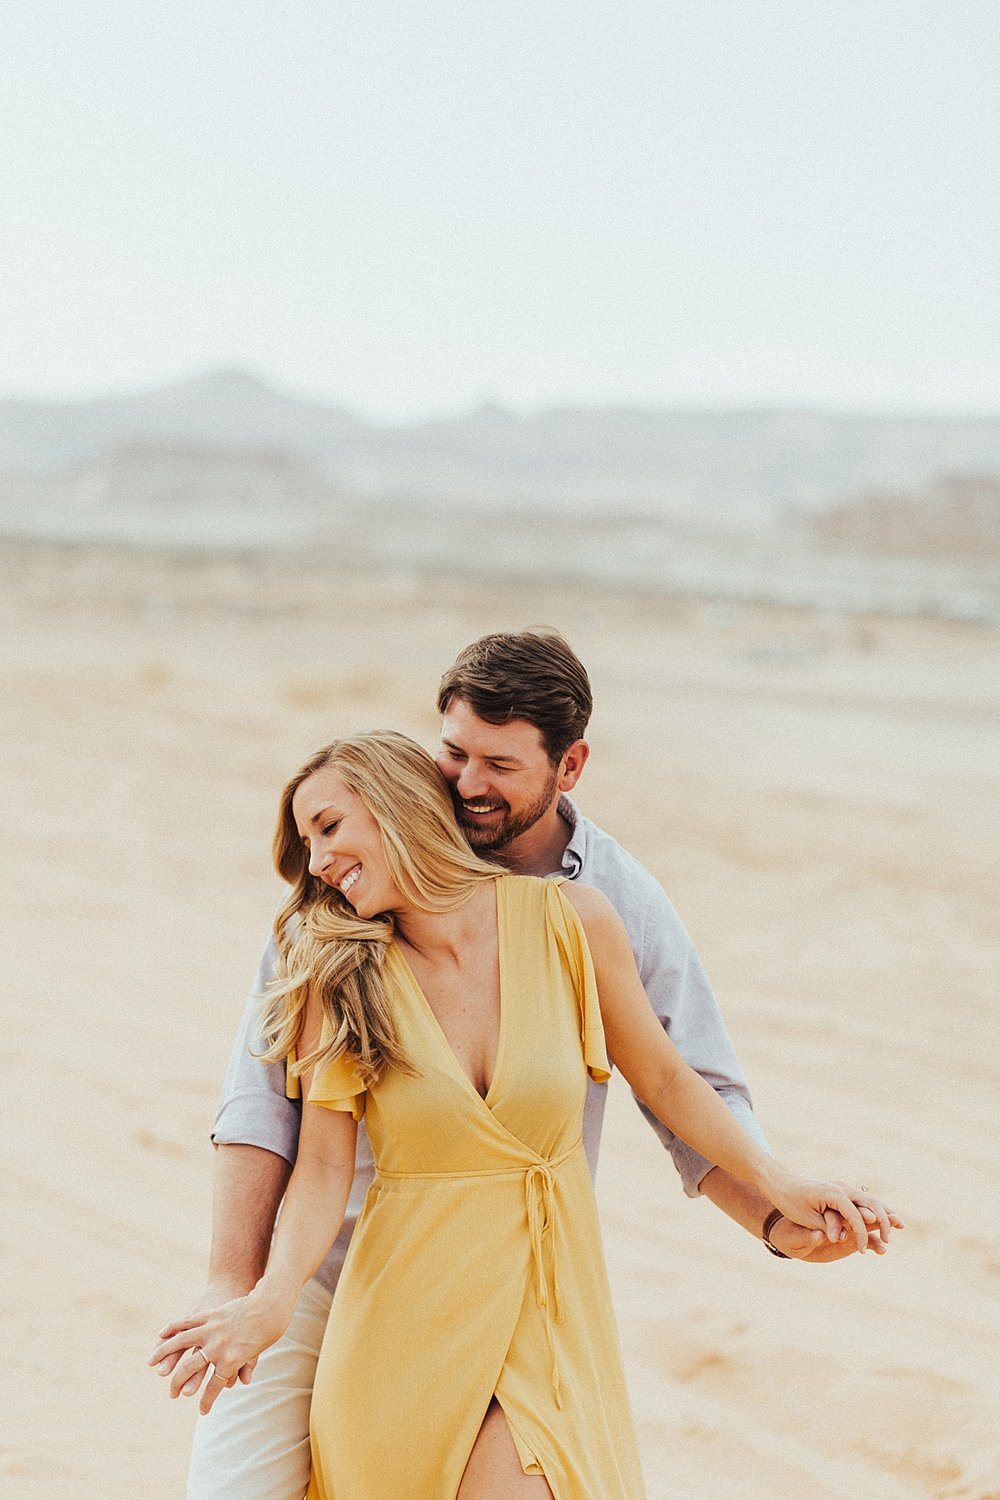 orange county california wedding photographer couples photography brettnicole and austin gaines-18.jpg